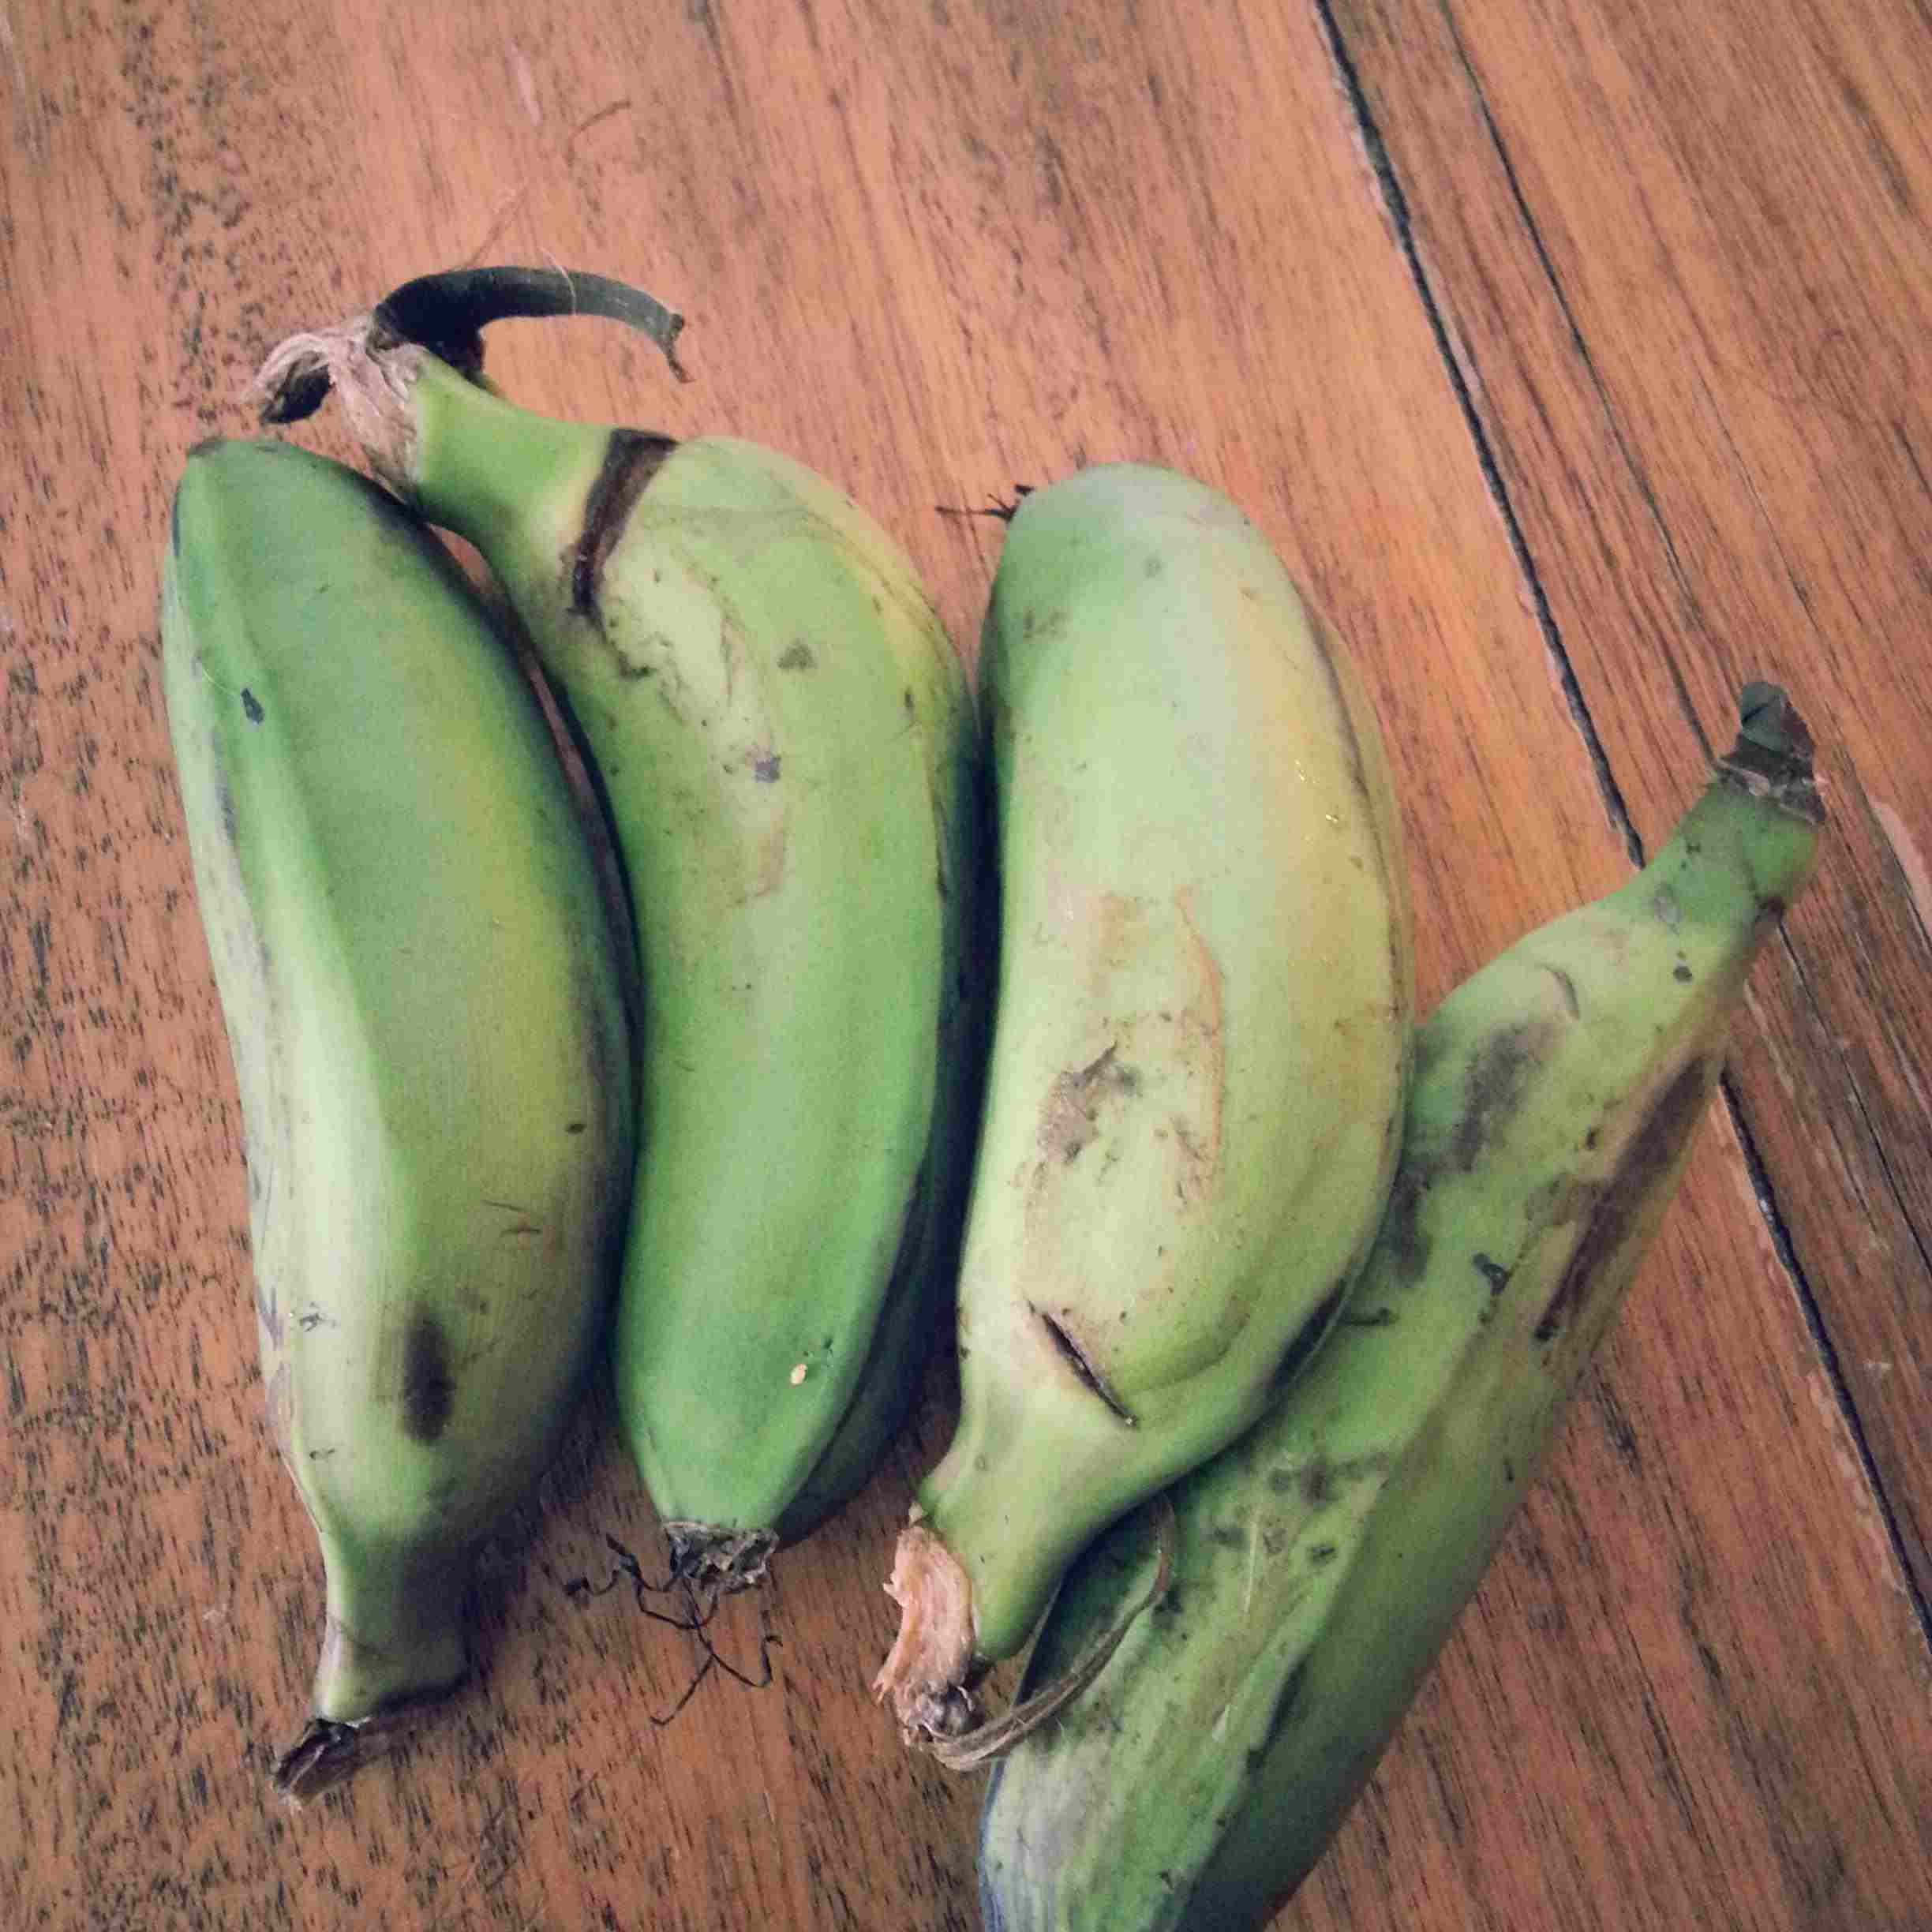 Green bananas for matoke